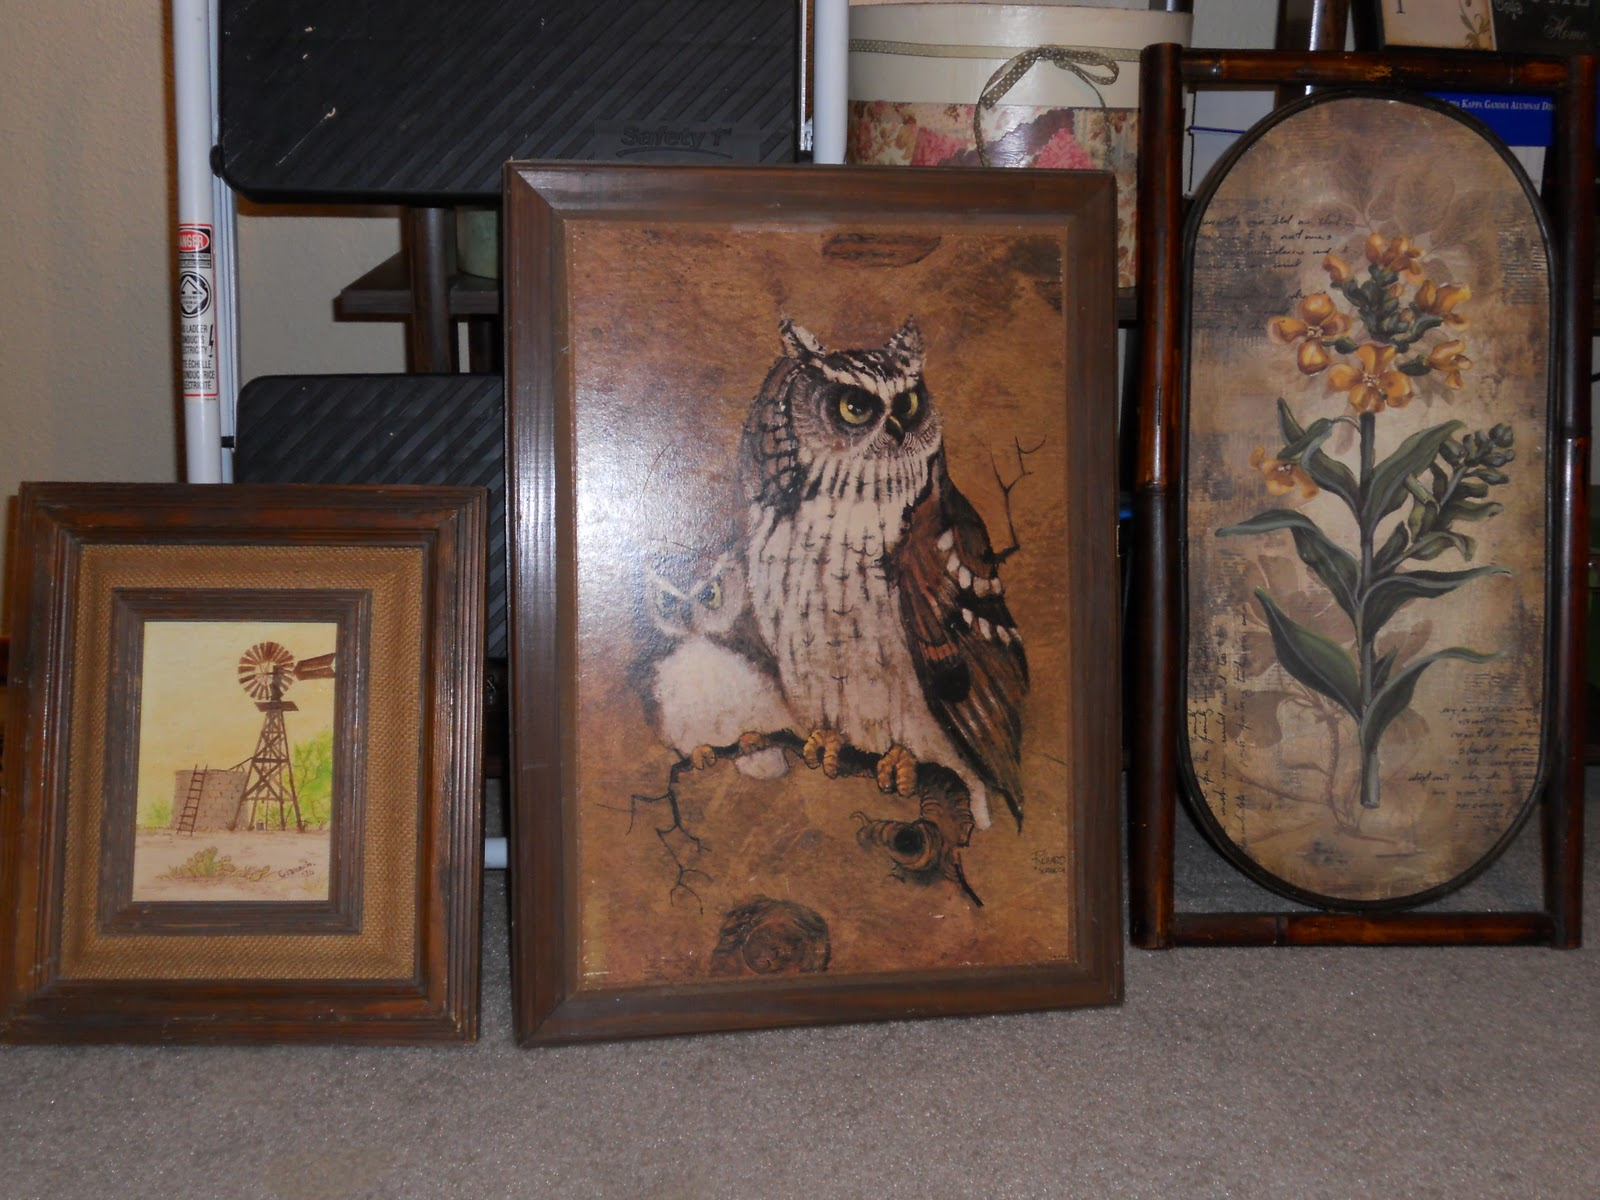 Rediscovered Potential: Goodwill Hunting: Ugly Frames - Repurposed